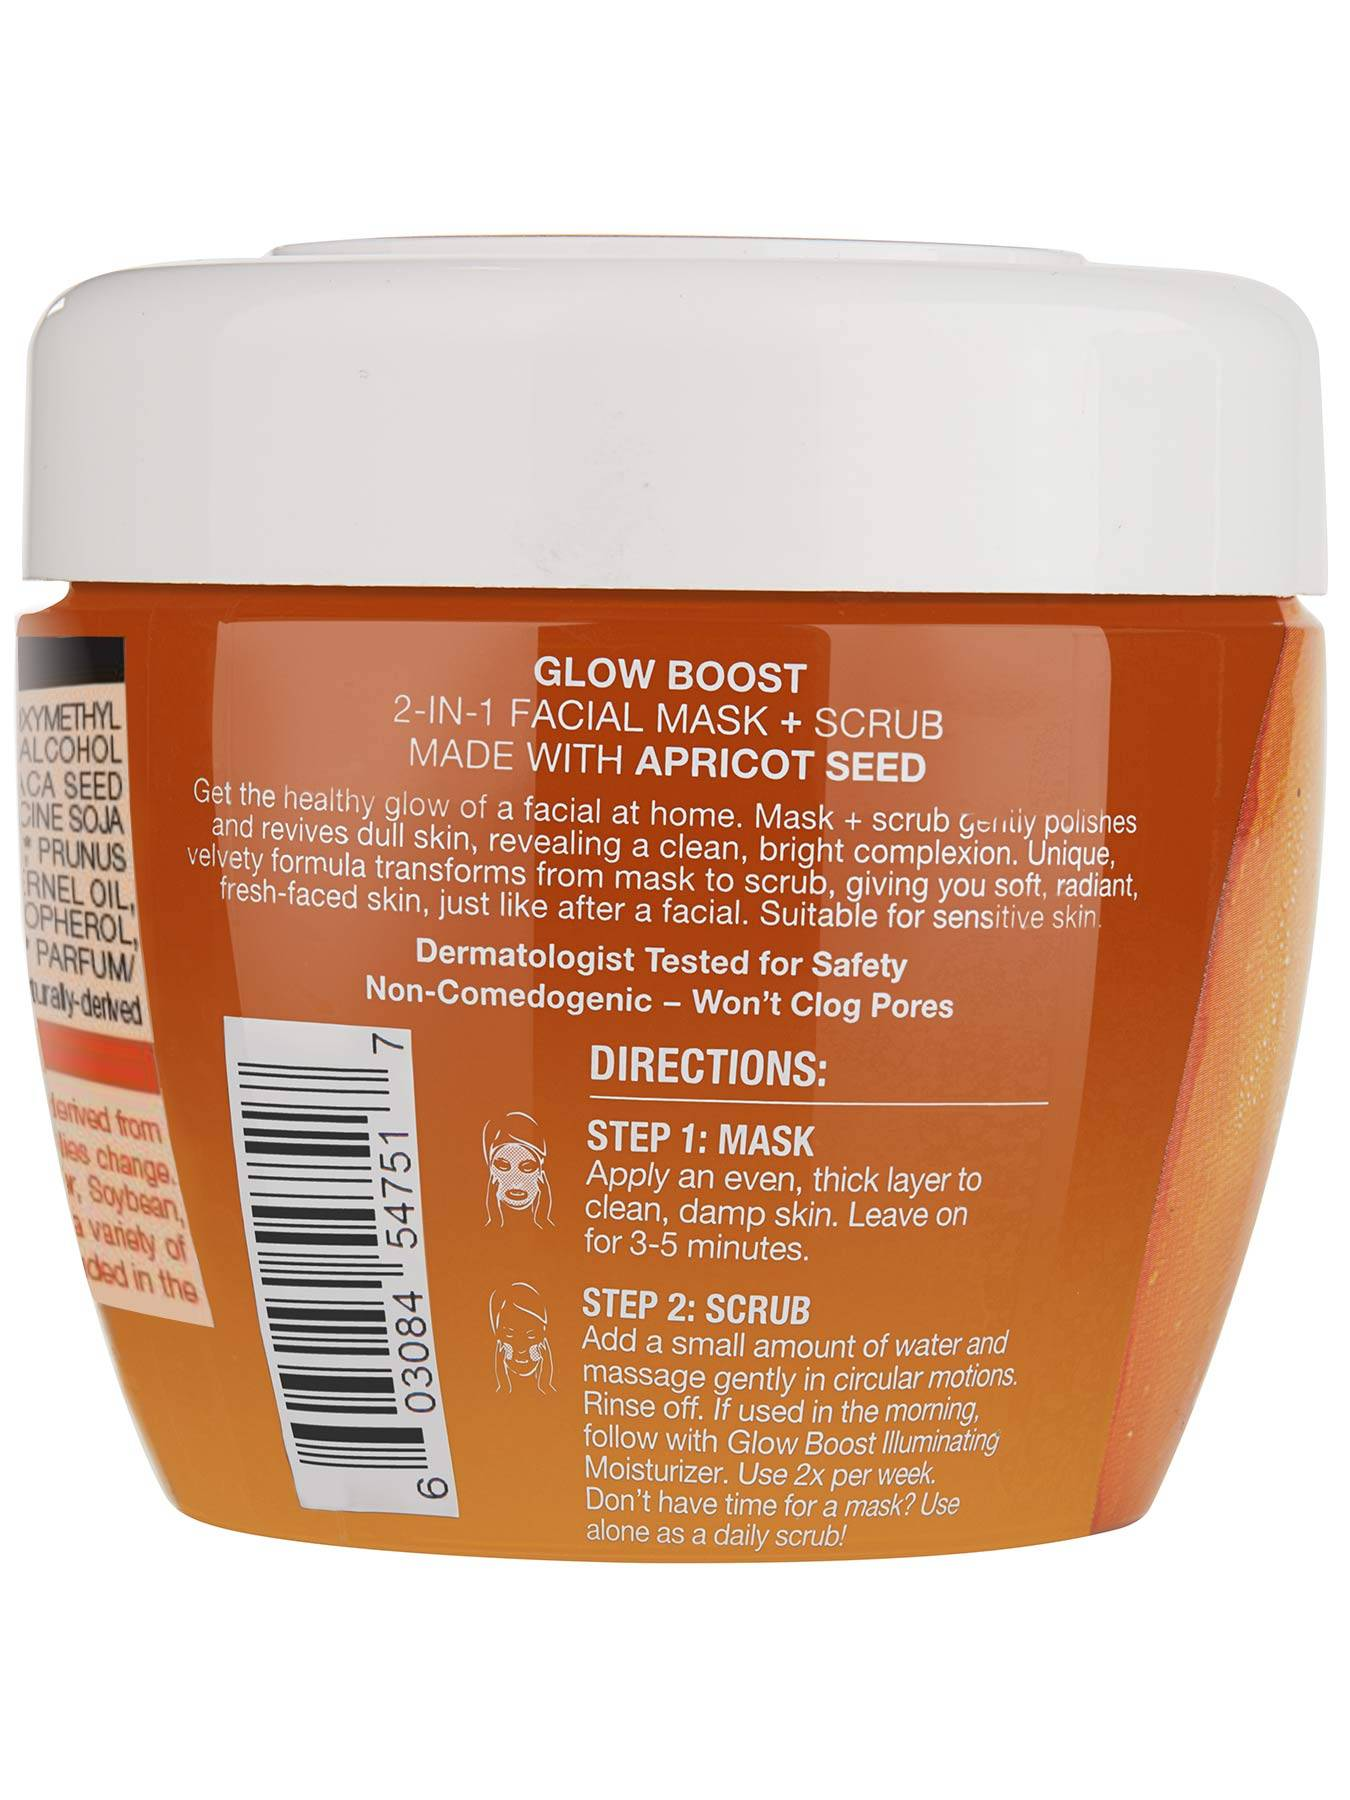 Glow Boost 2-in-1 Facial Mask and Scrub